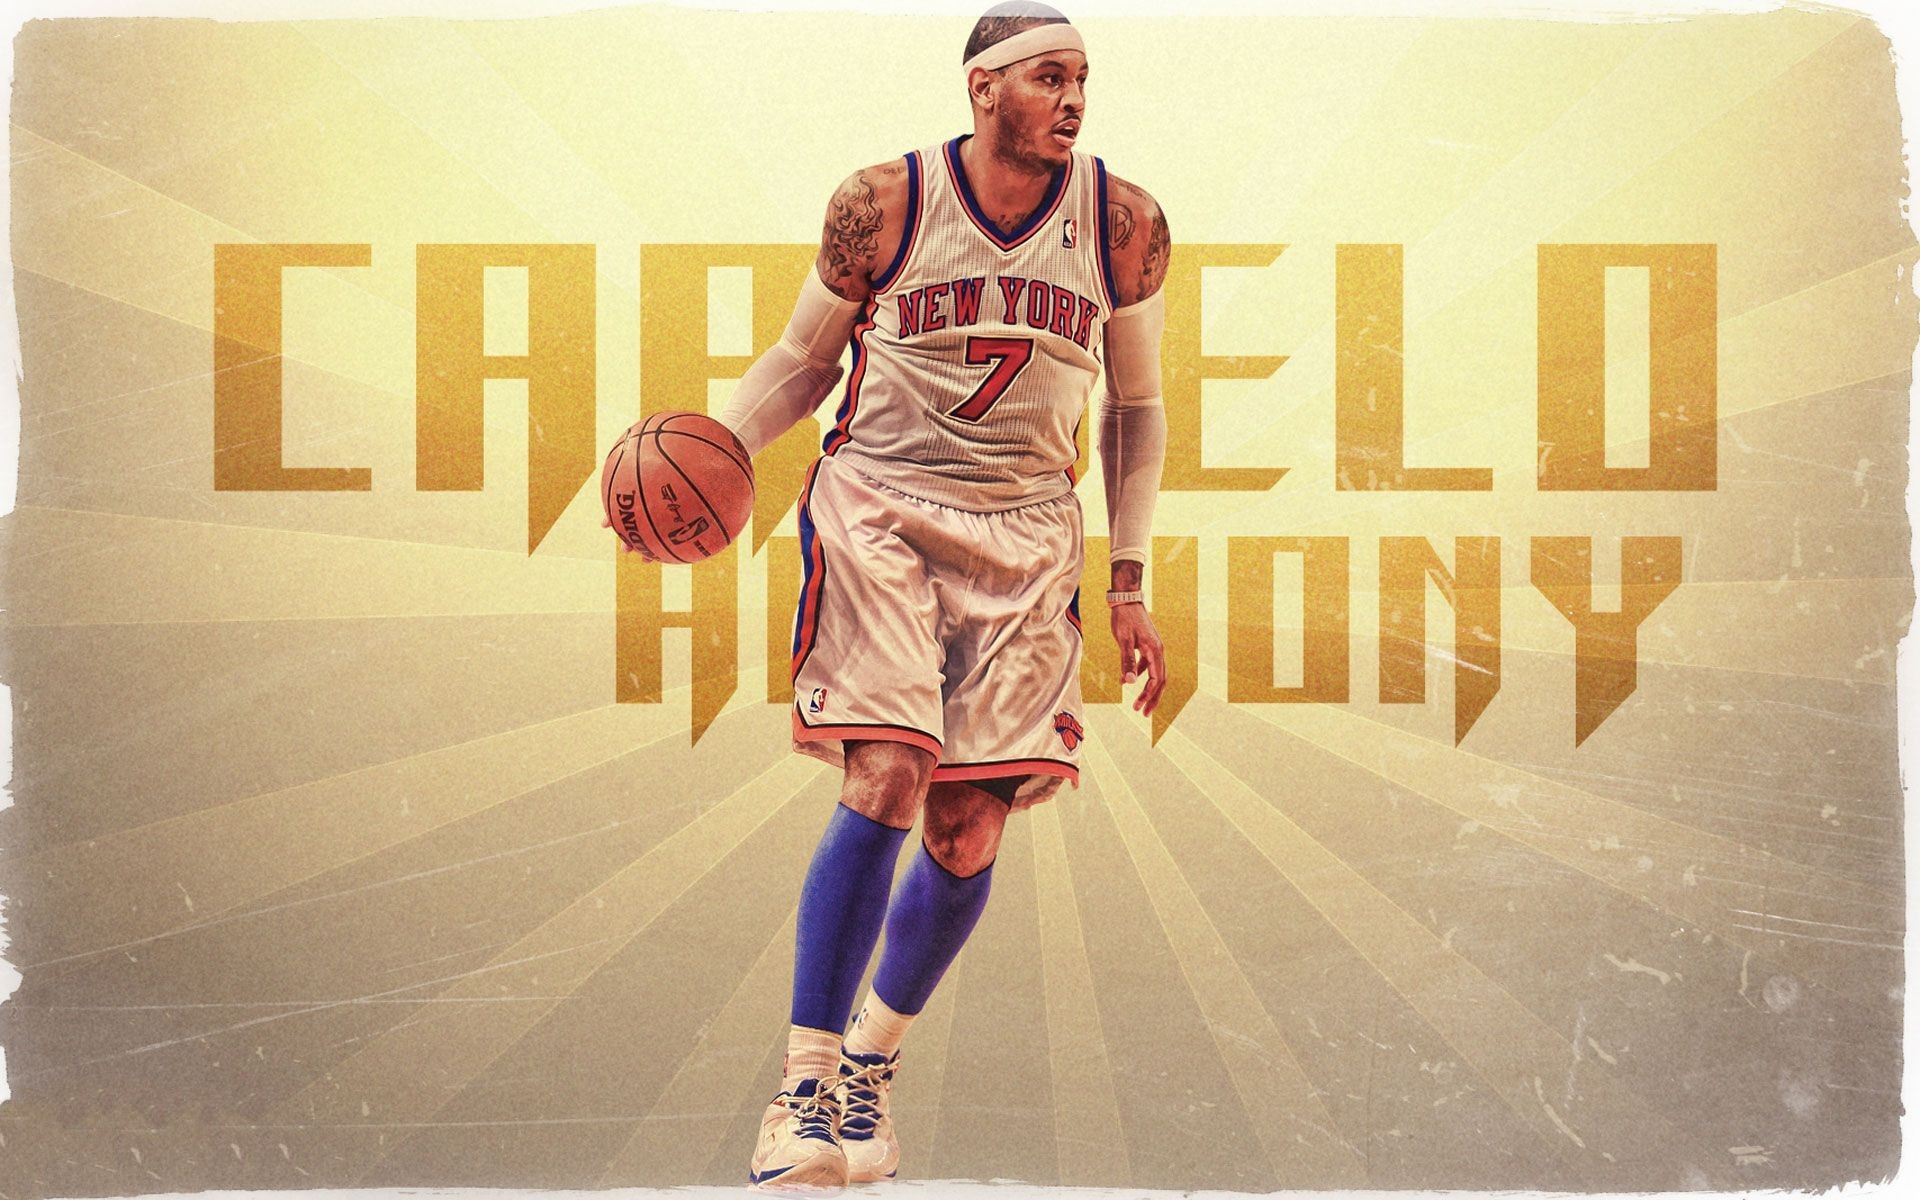 1920x1200 Carmelo Anthony Wallpaper Free Download.